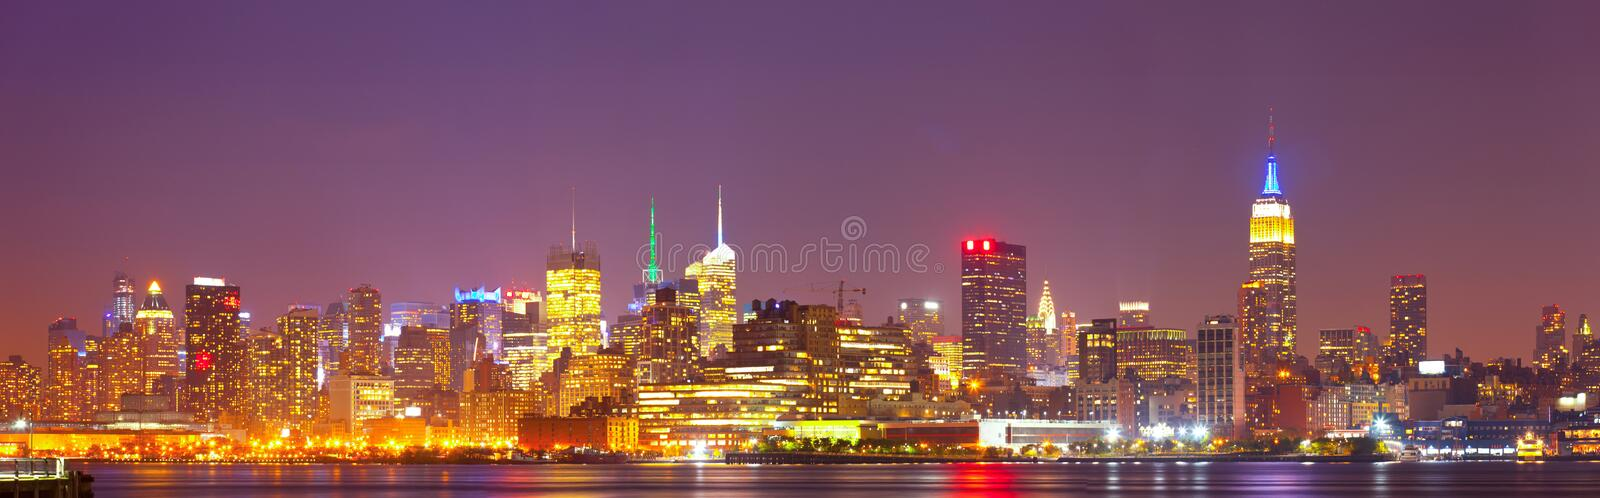 Panorama coloré d'horizon de nuit de New York City, Etats-Unis images stock